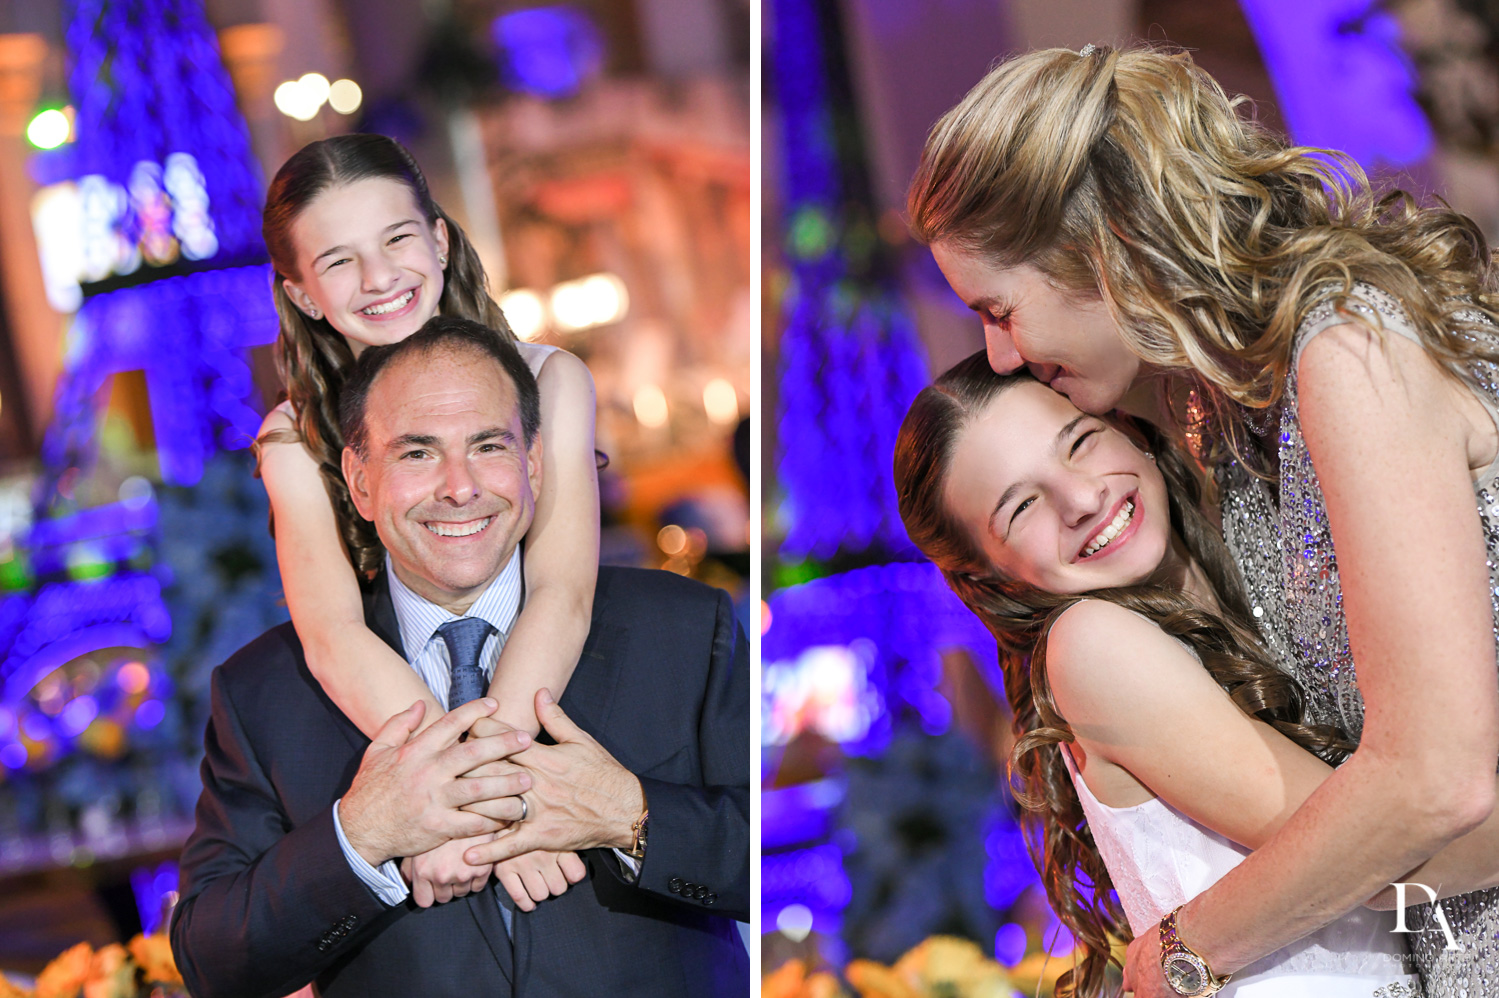 parent portraits at Madeline in Paris theme Bat Mitzvah at Boca Raton Resort and Club by Domino Arts Photography